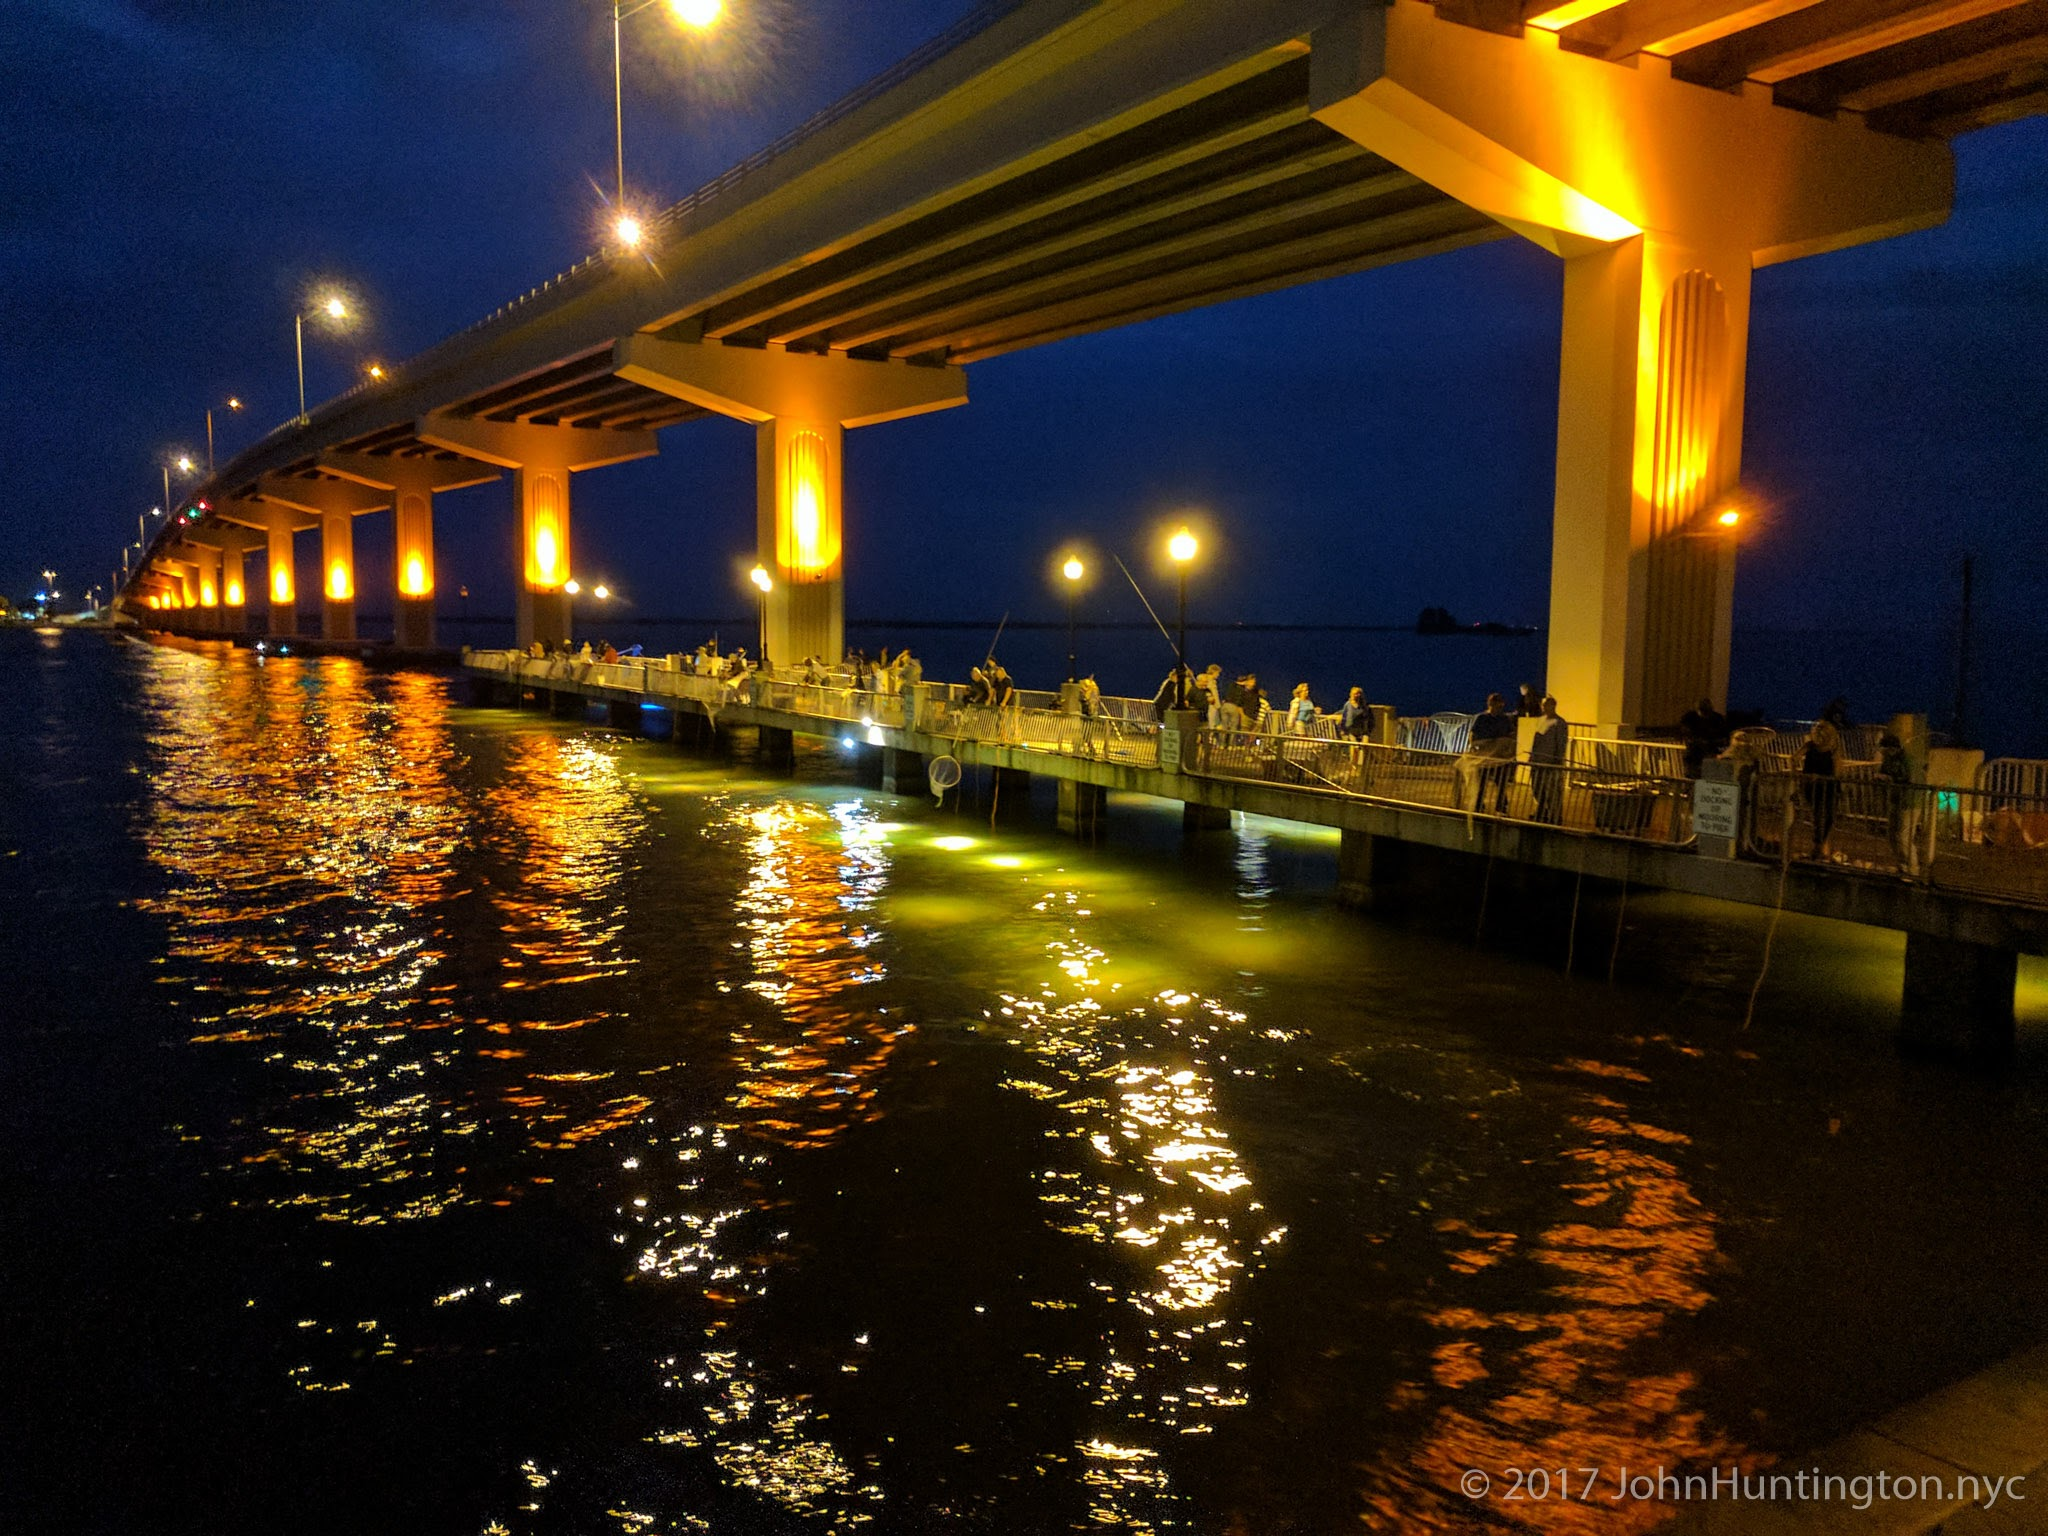 Fishing for shrimp with lights In Titusville